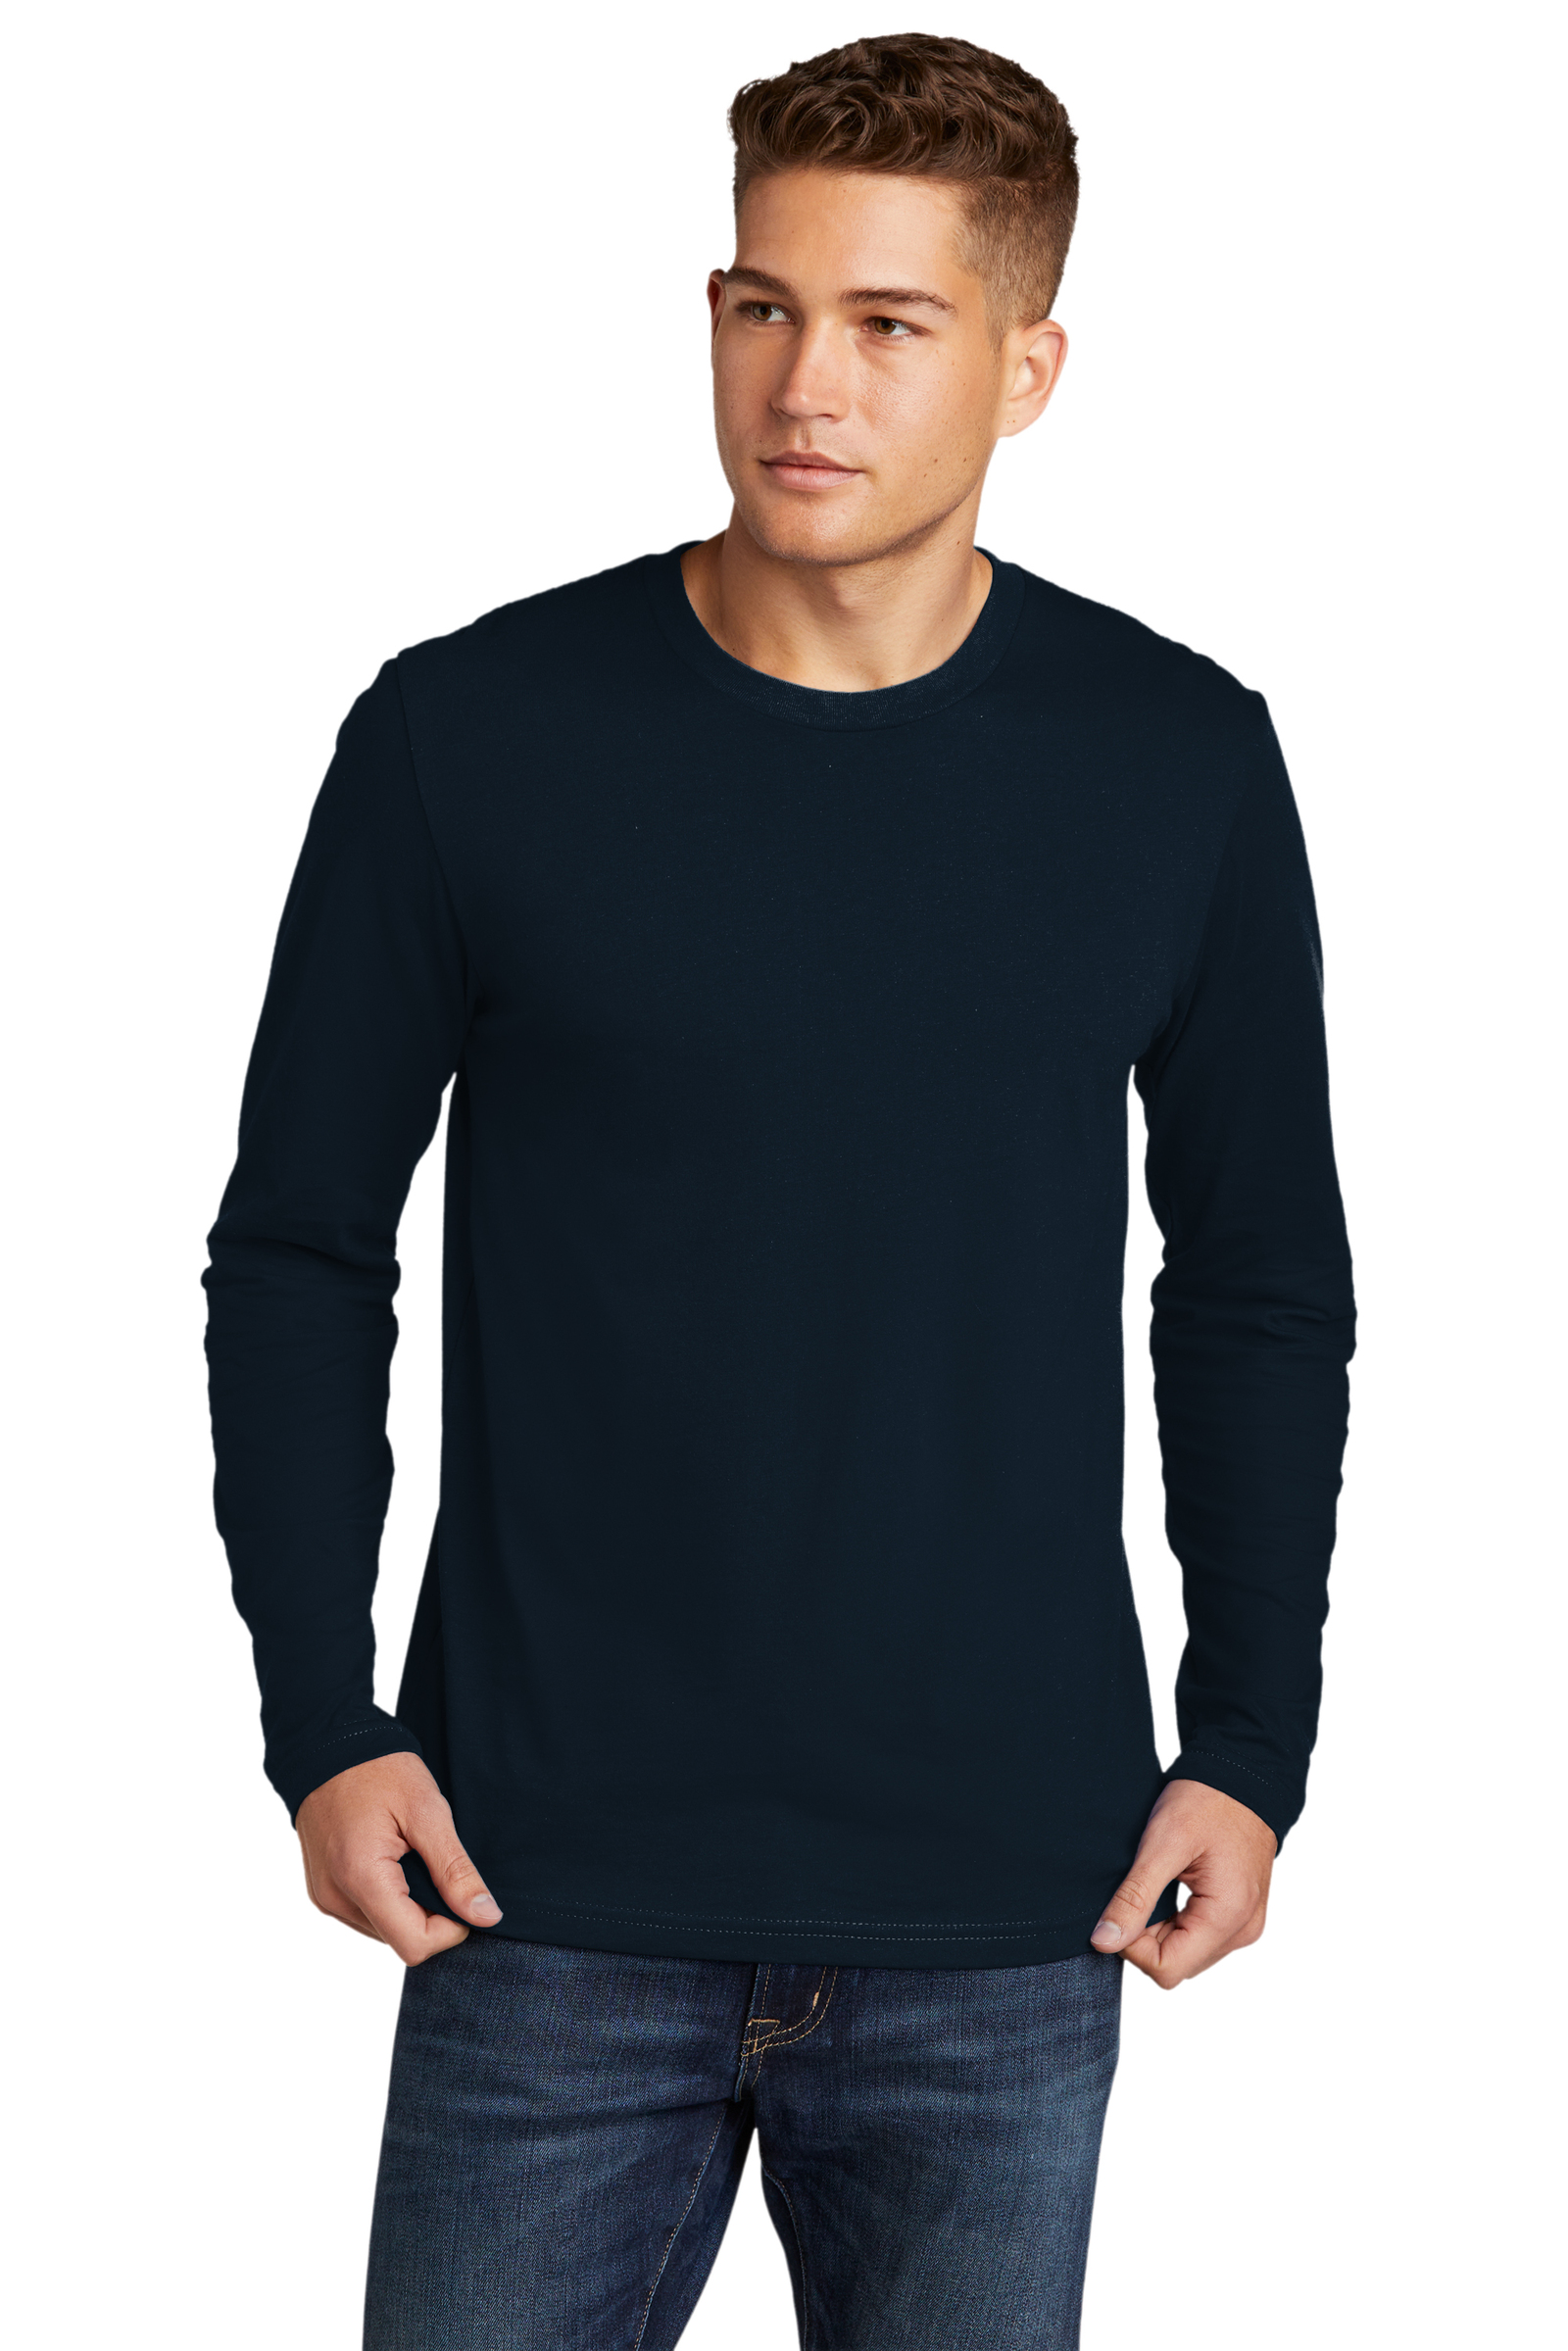 Next Level Embroidered Men's Cotton Long Sleeve Tee